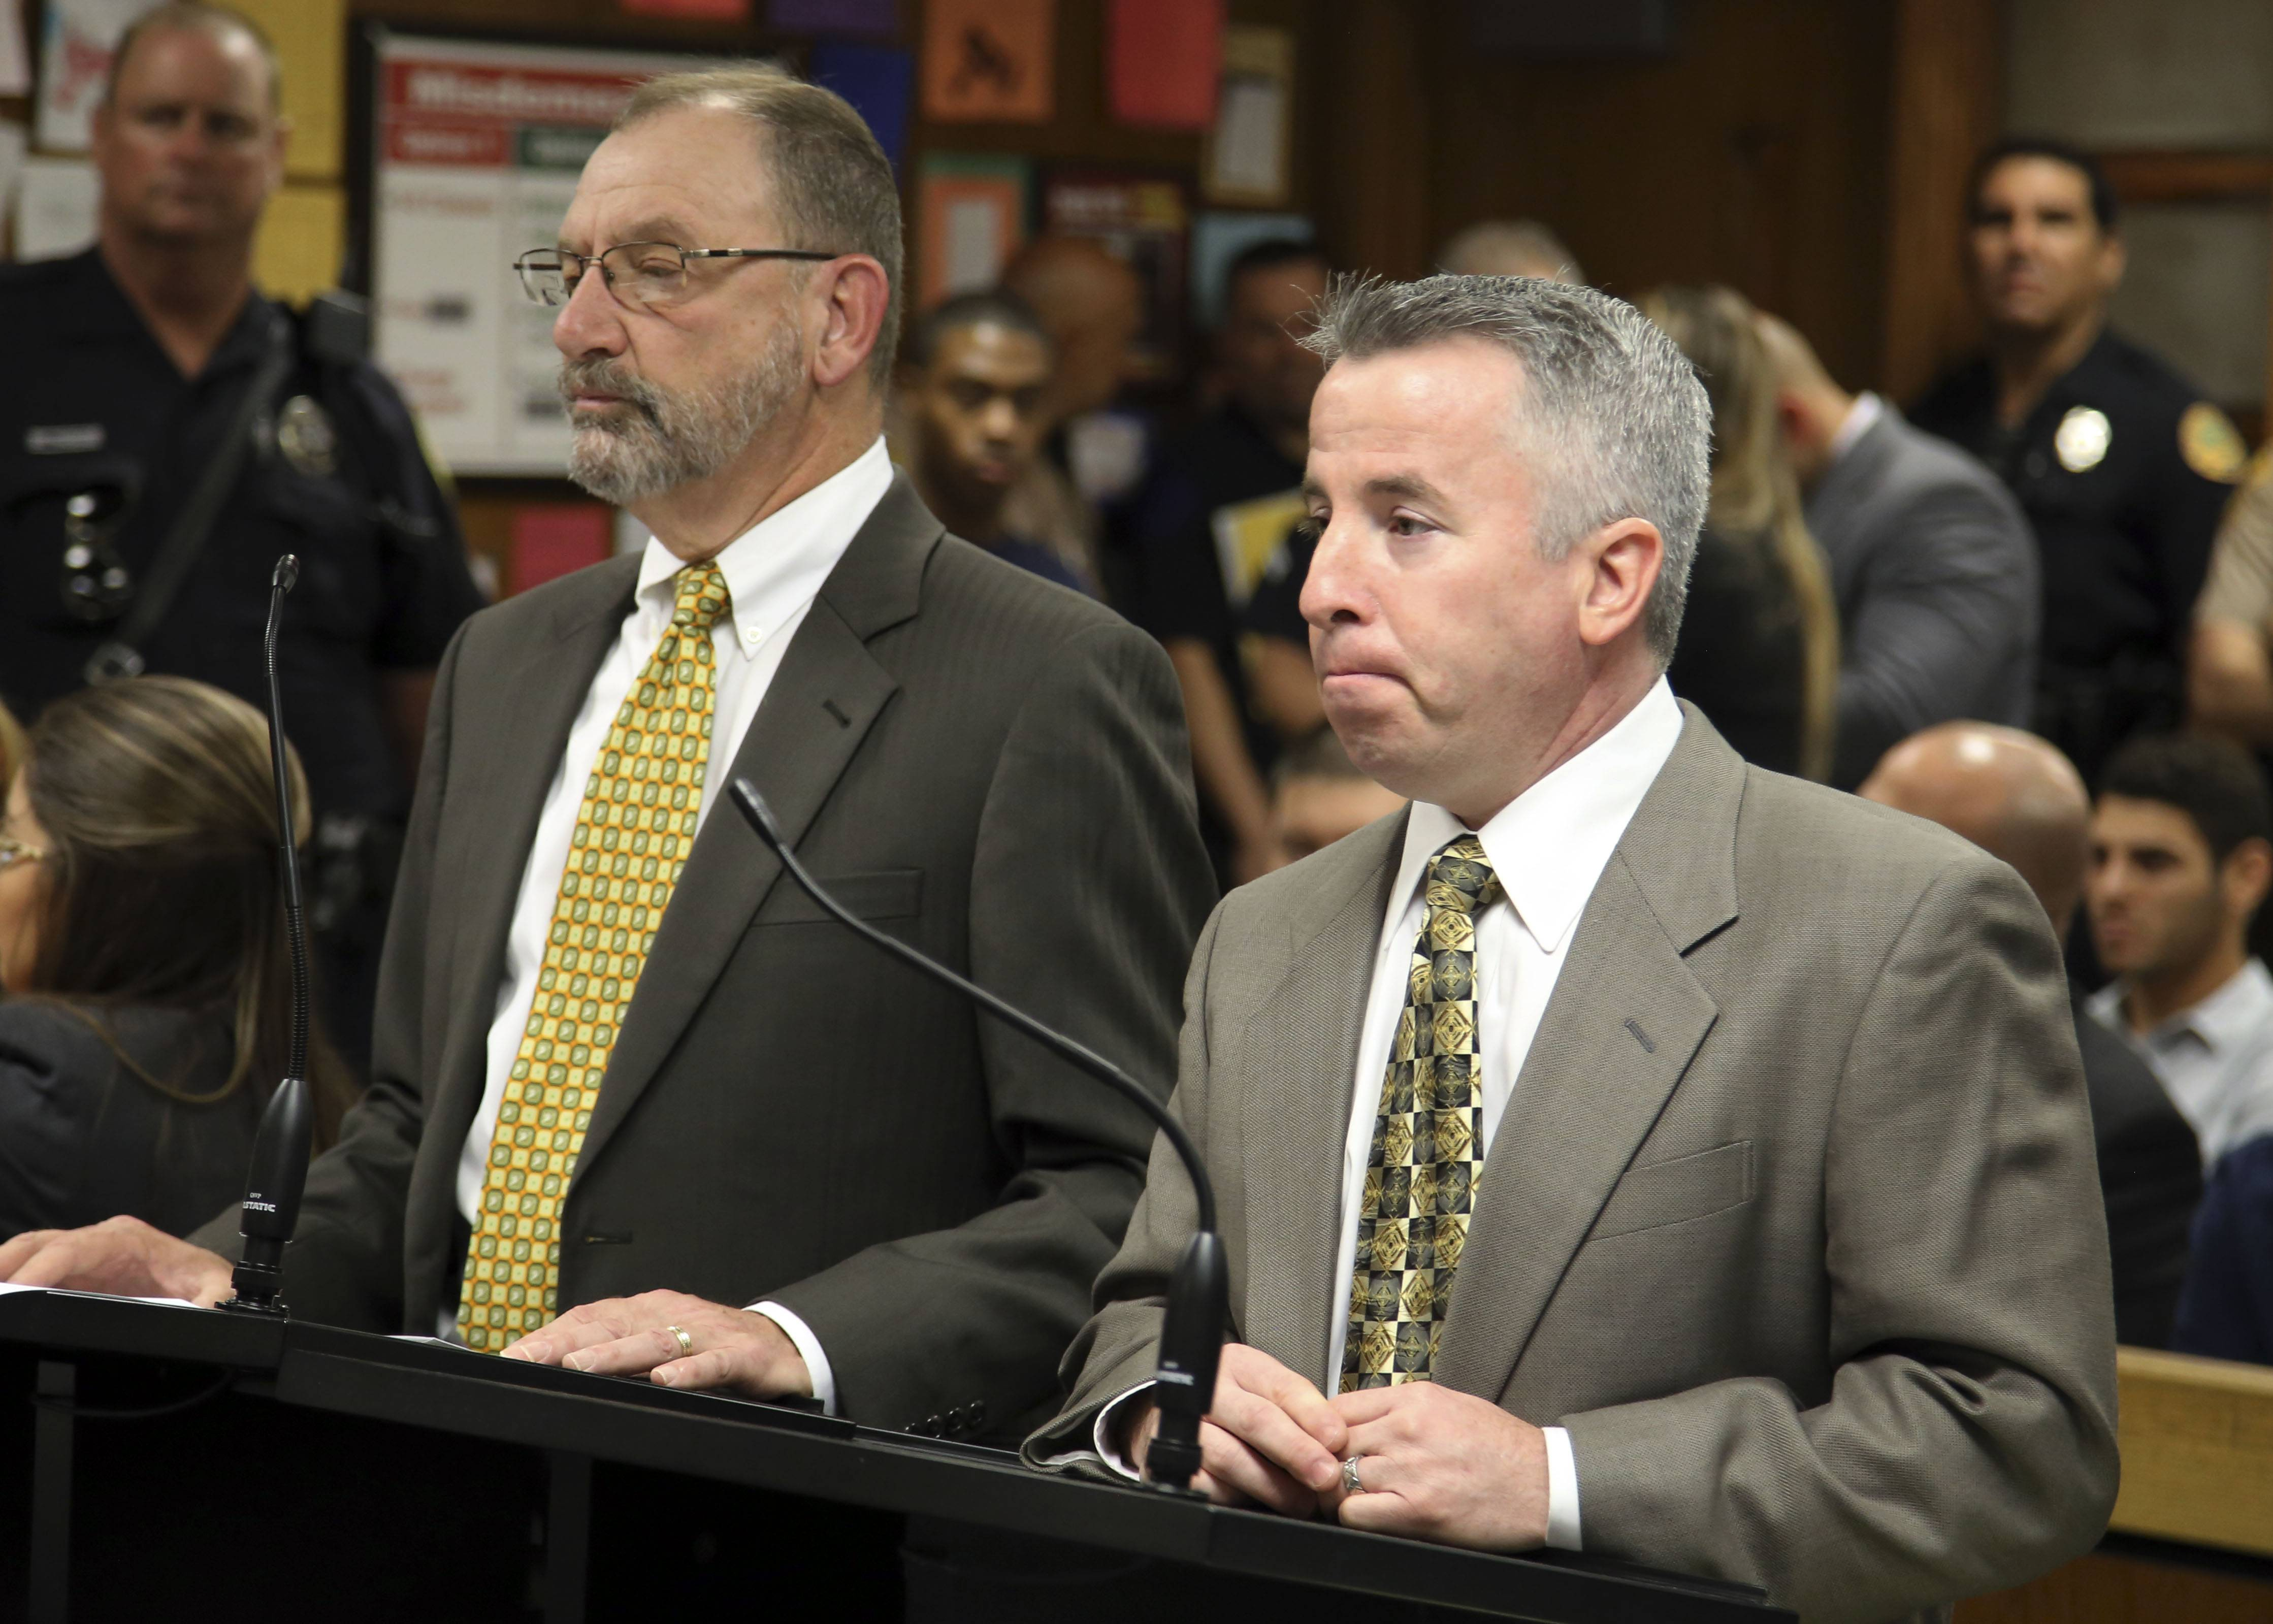 Assistant state attorney David Gilbert, left, and defense attorney Mark Shapiro, right, said Wednesday they need more time to work out a possible plea deal on charges that pop star Justin Bieber drove under the influence and resisted arrest.